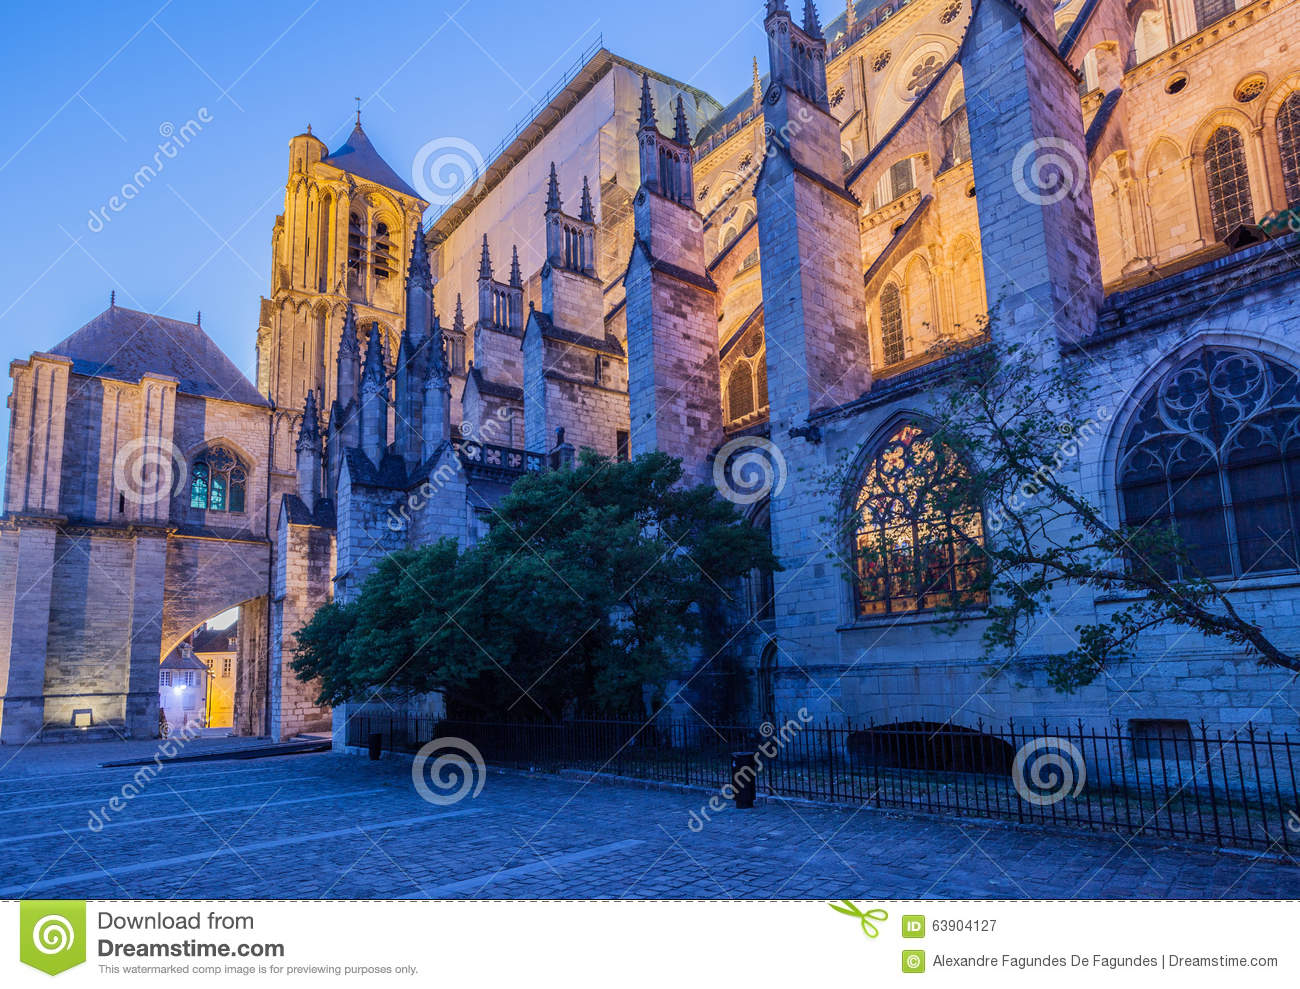 Bourges france stock photo image 63904127 - Stock industriel bourges ...